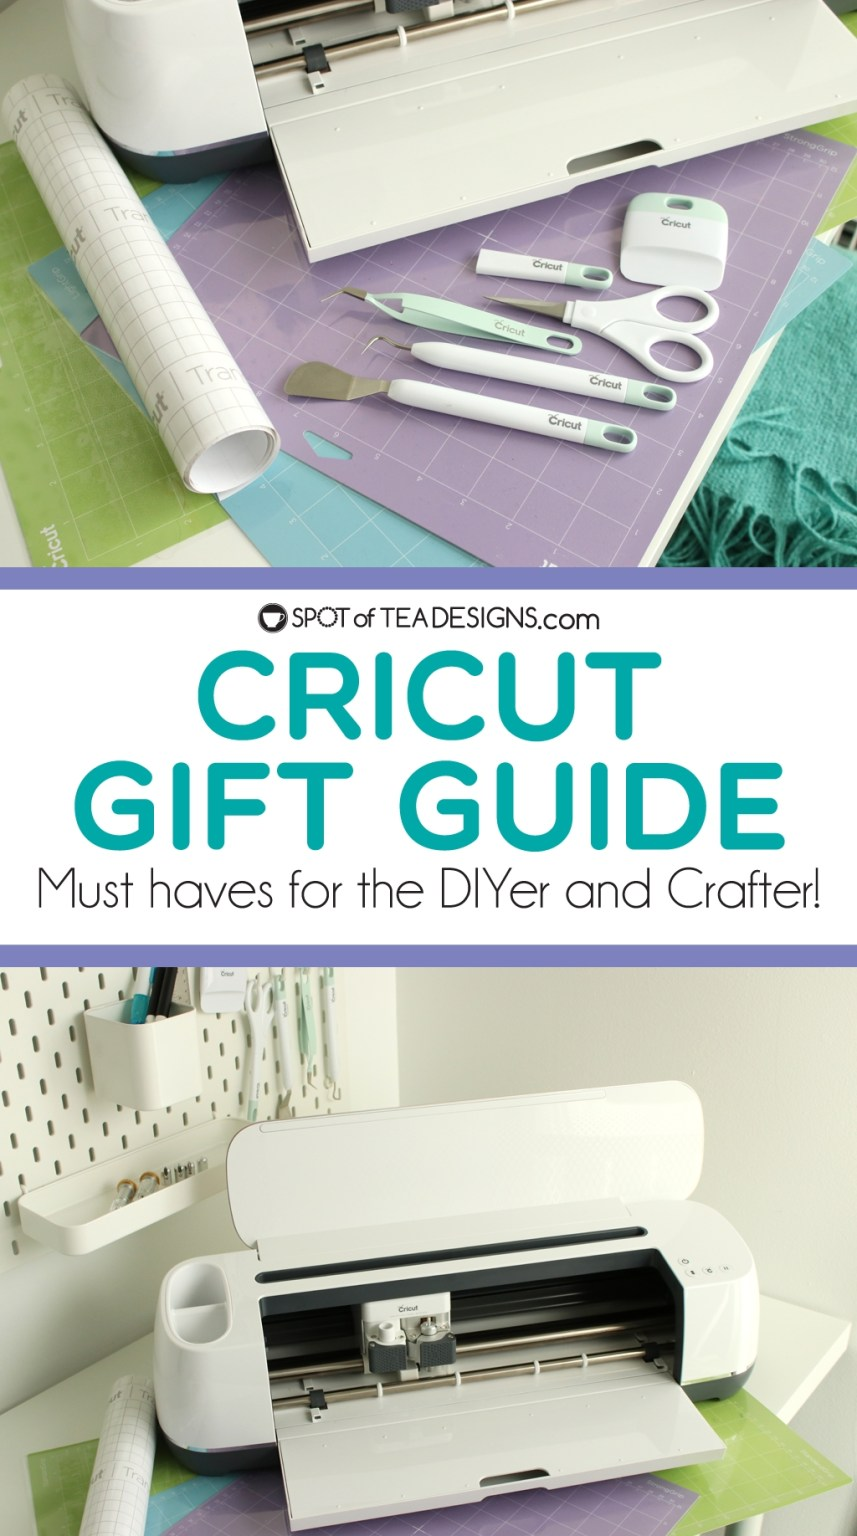 Cricut Gift Guide - great ideas for the DIYer and crafter! | spotofteadesigns.com